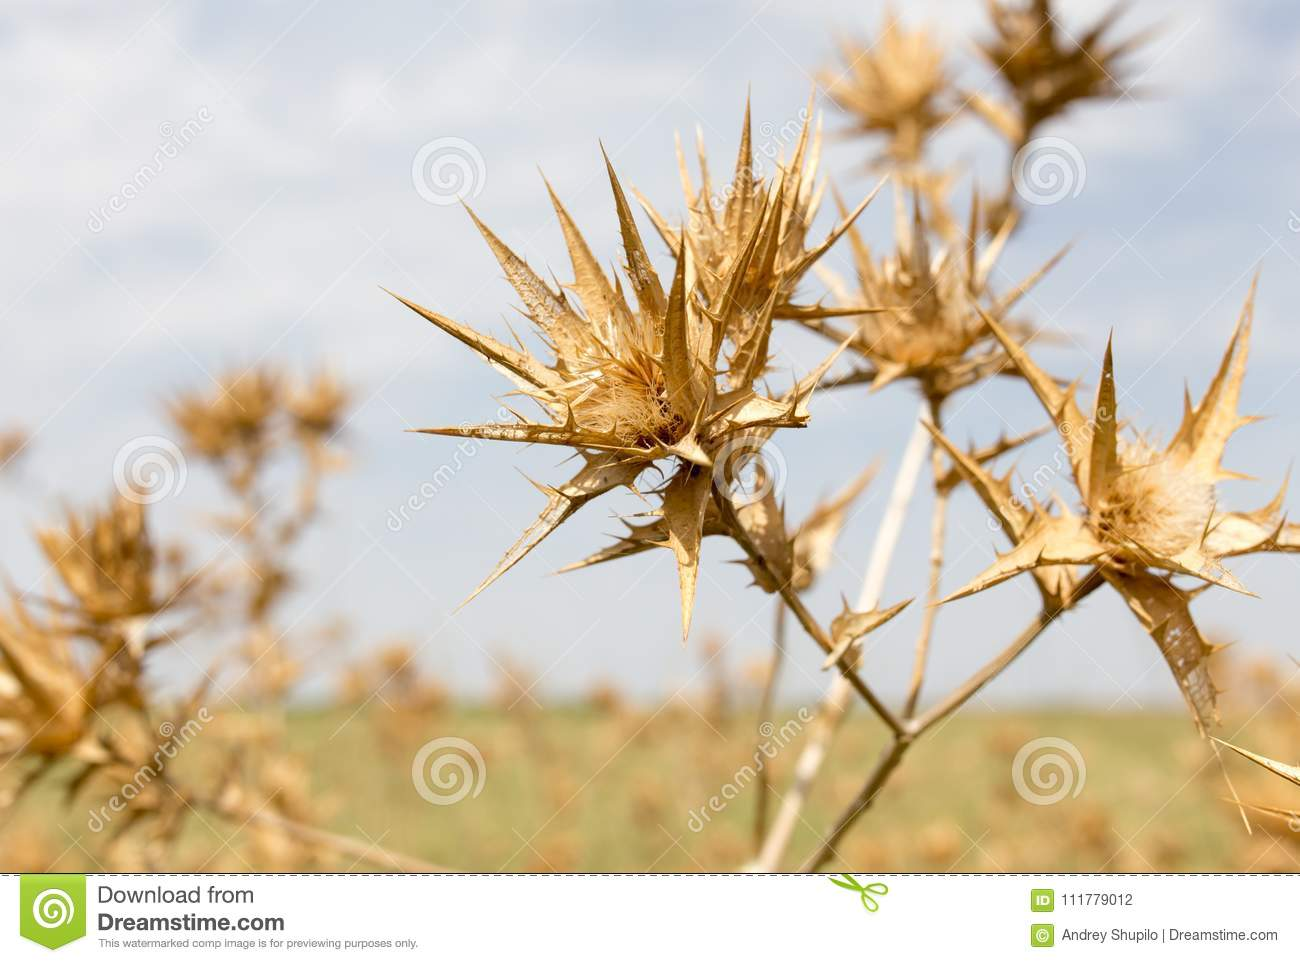 Dry prickly grass against the sky